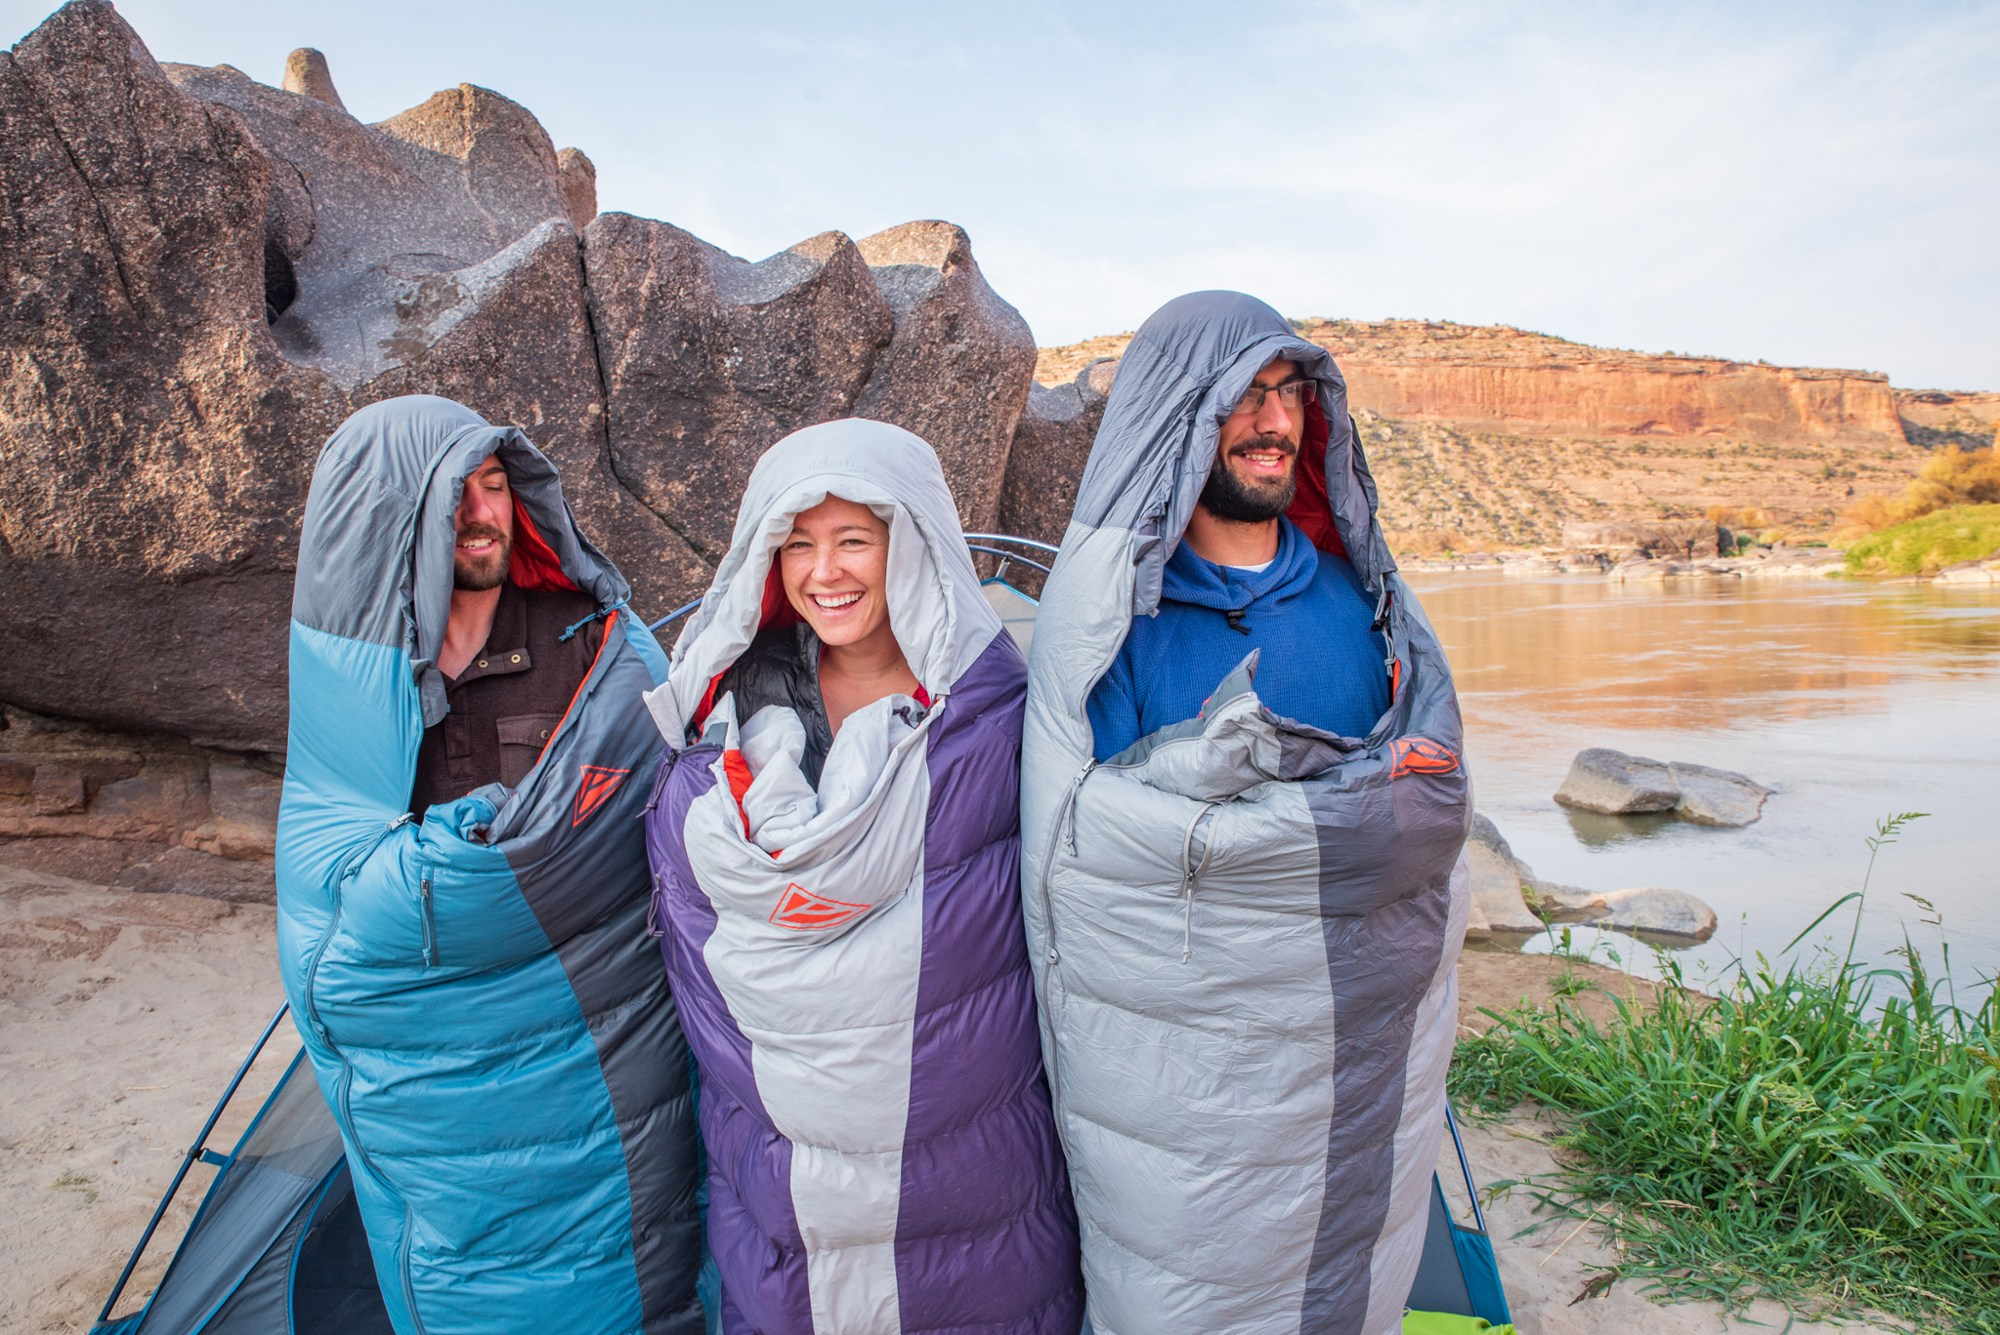 3 people wrapped up in sleeping bags, standing in a canyon outside